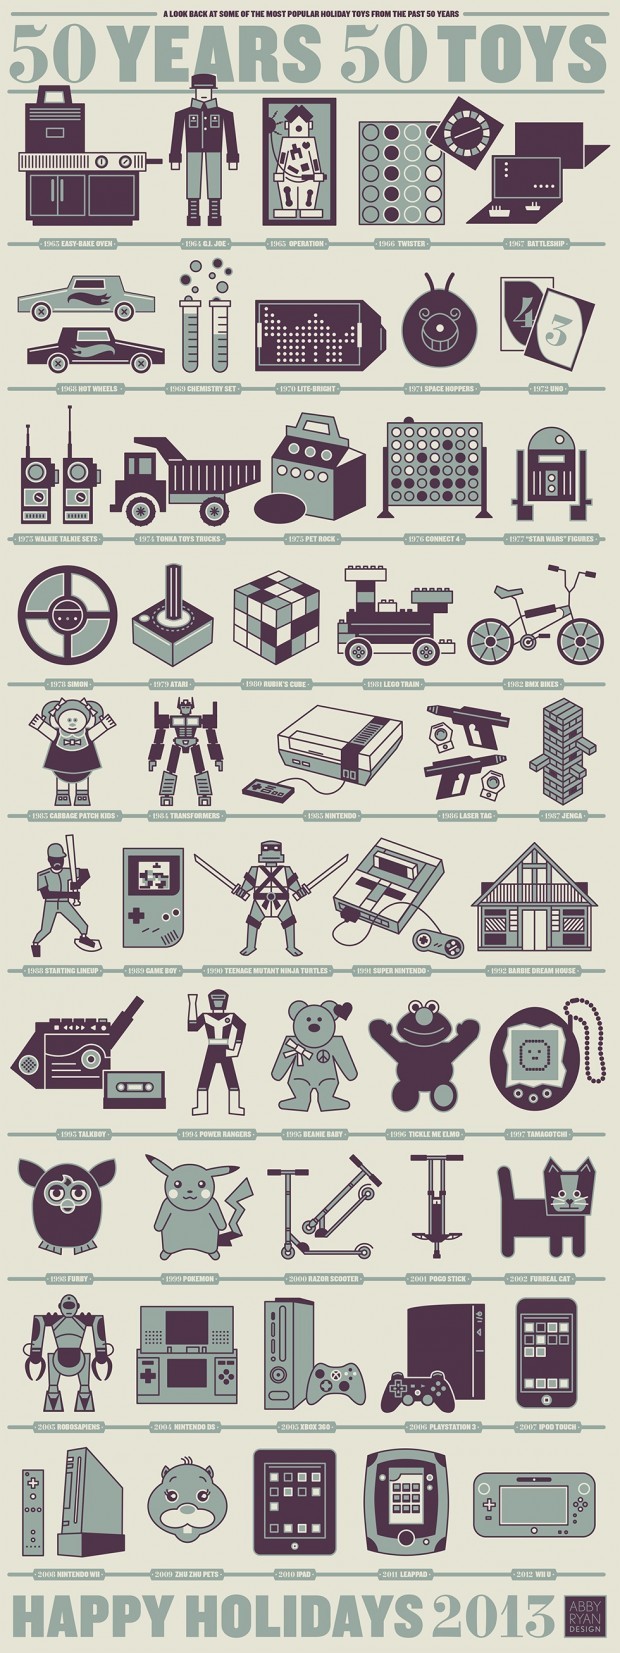 50-years-50-toys